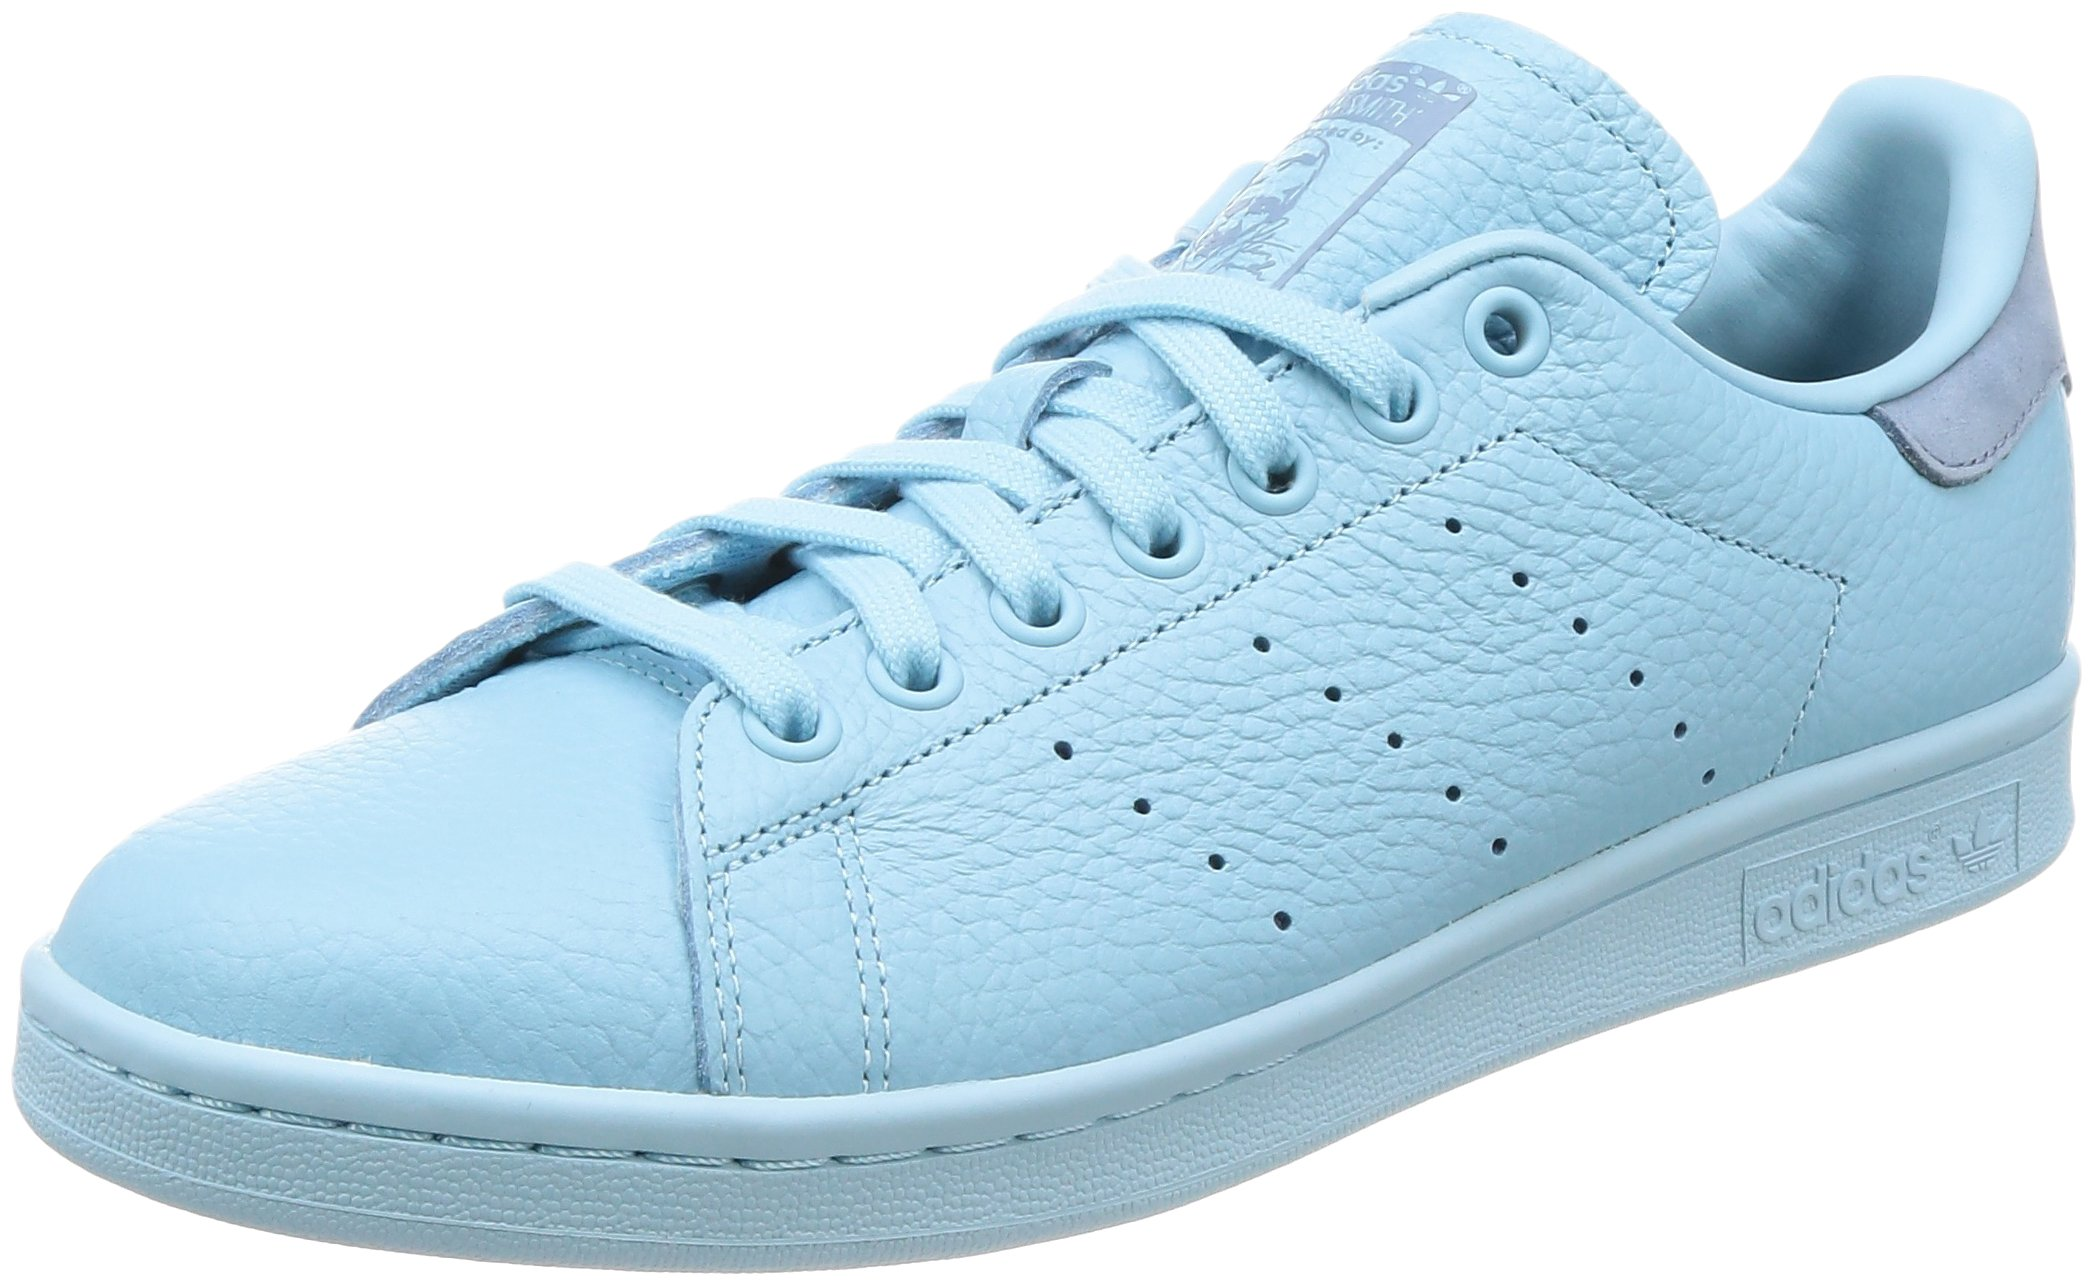 quality design 688ca 32775 adidas Stan Smith Mens Trainers Pastel Blue - 8 UK